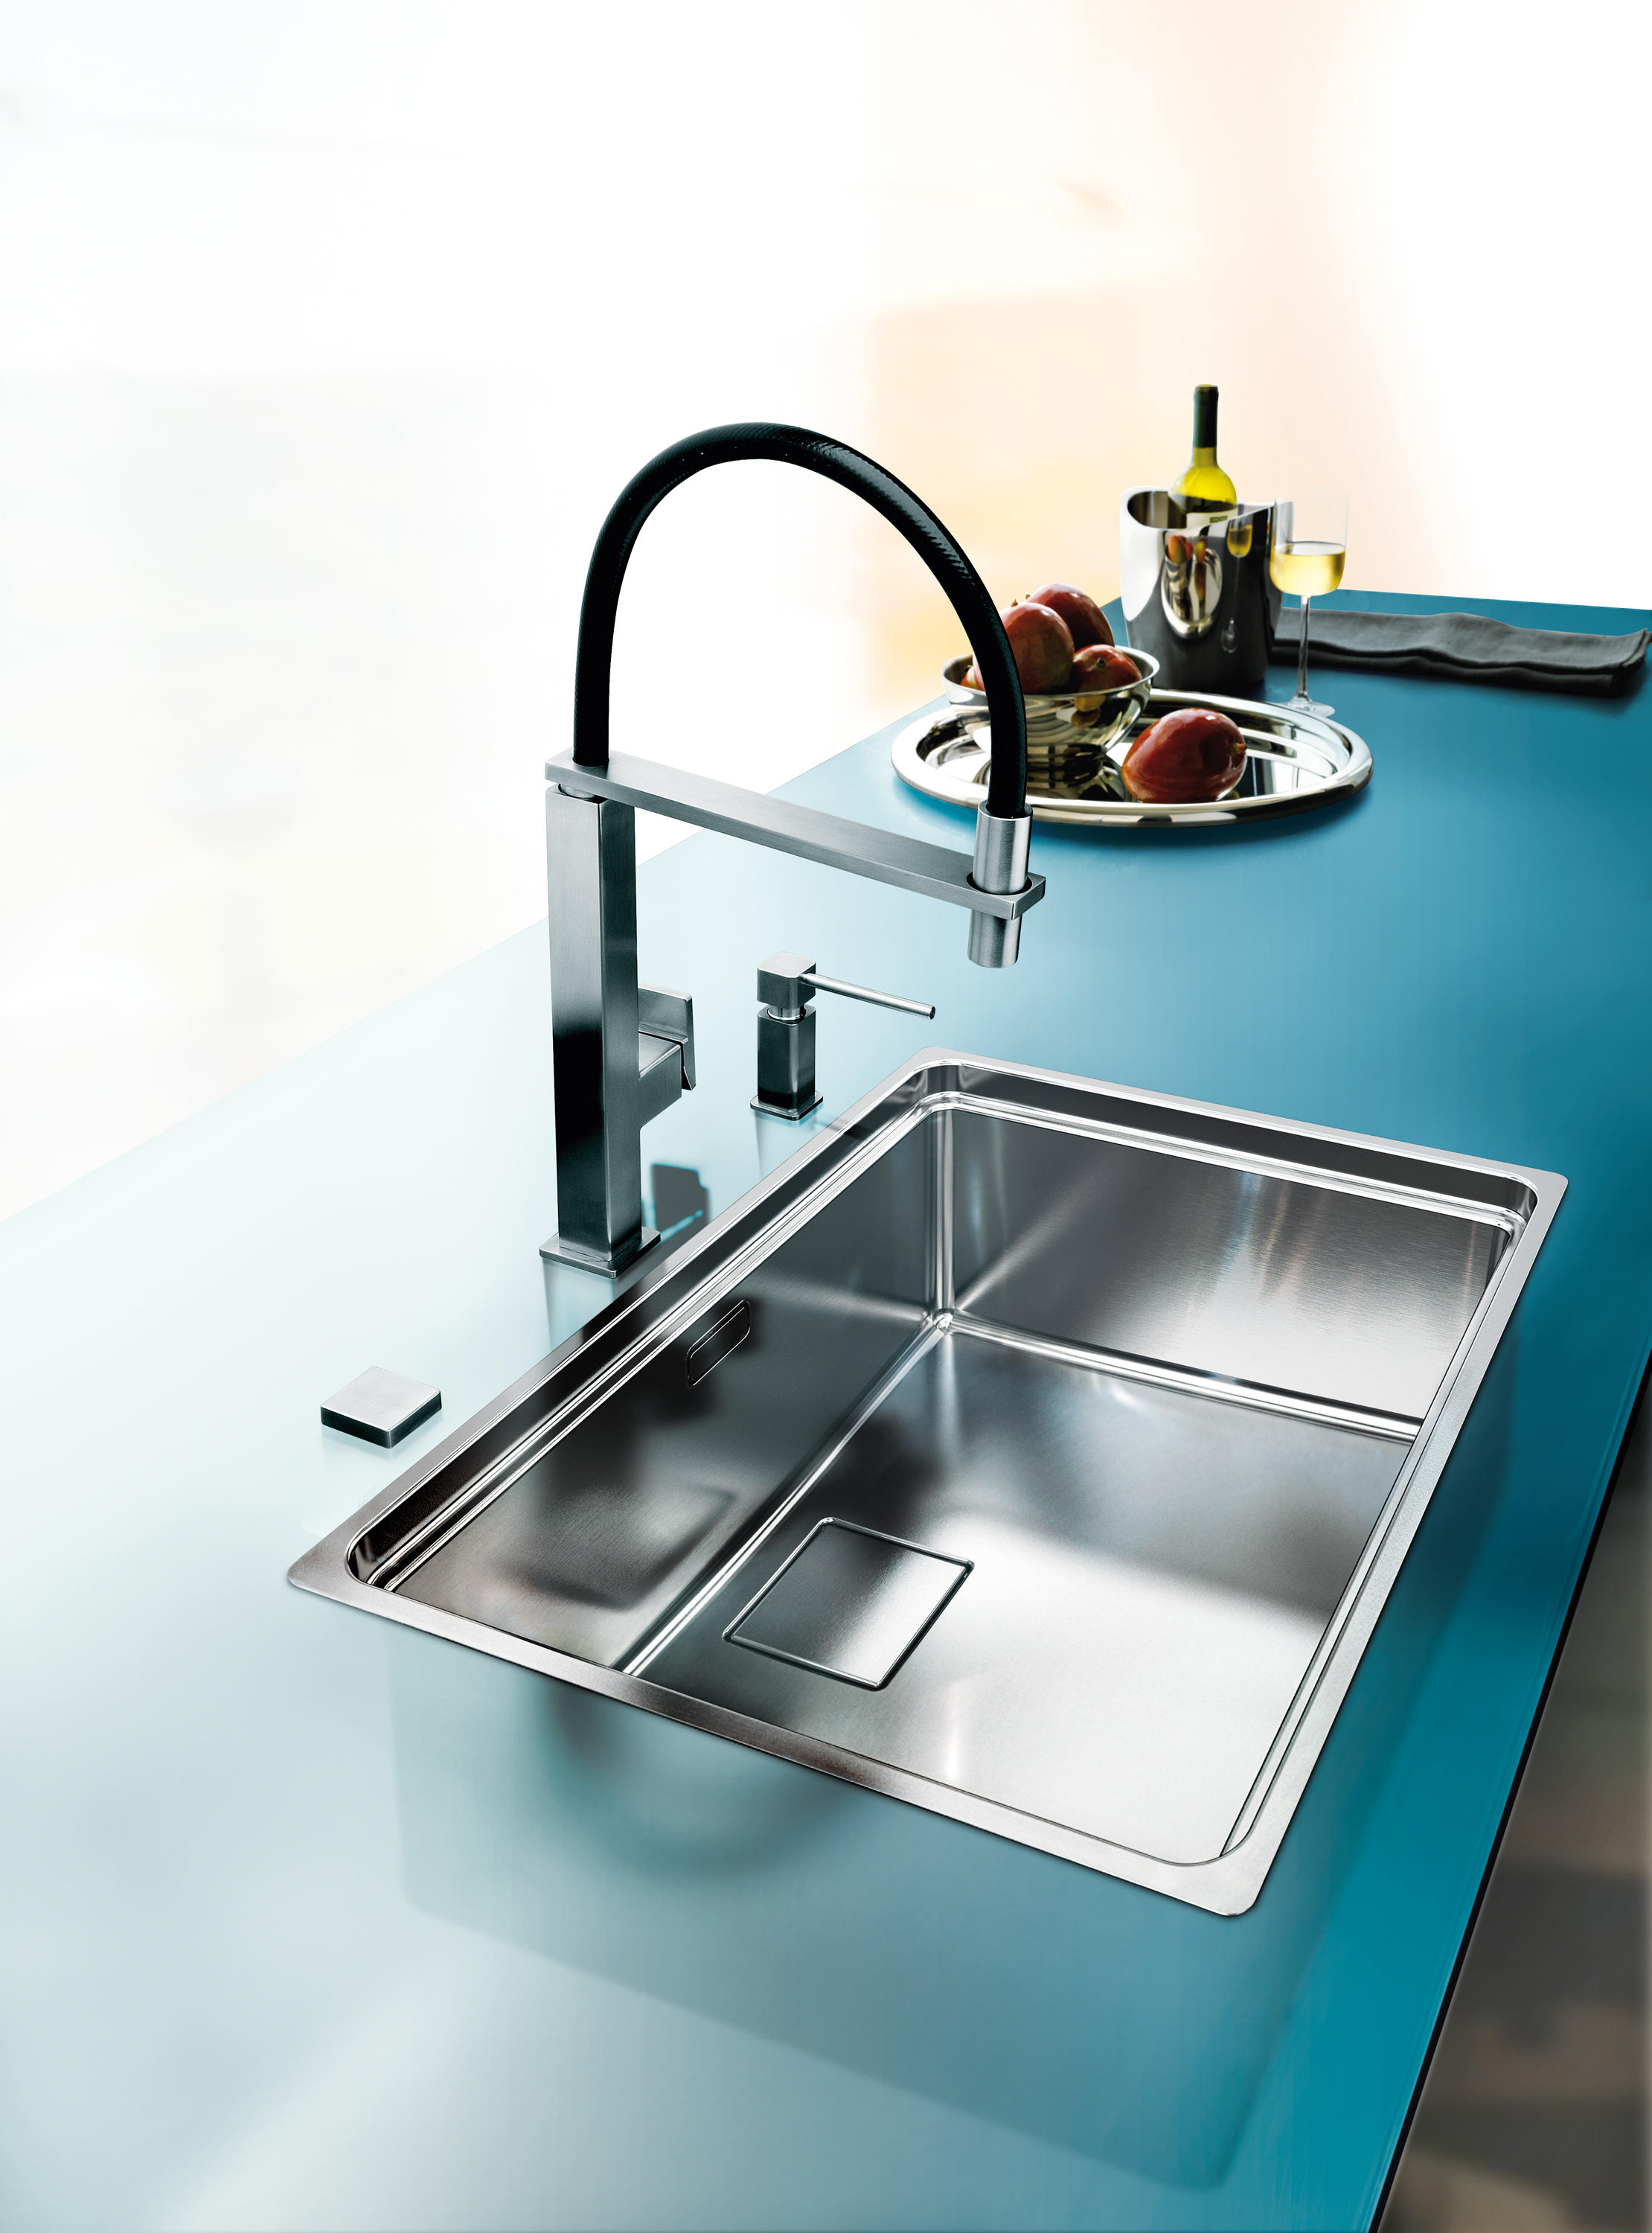 CENTINOX SINK CMX 210-50 STAINLESS STEEL - Kitchen sinks from Franke ...